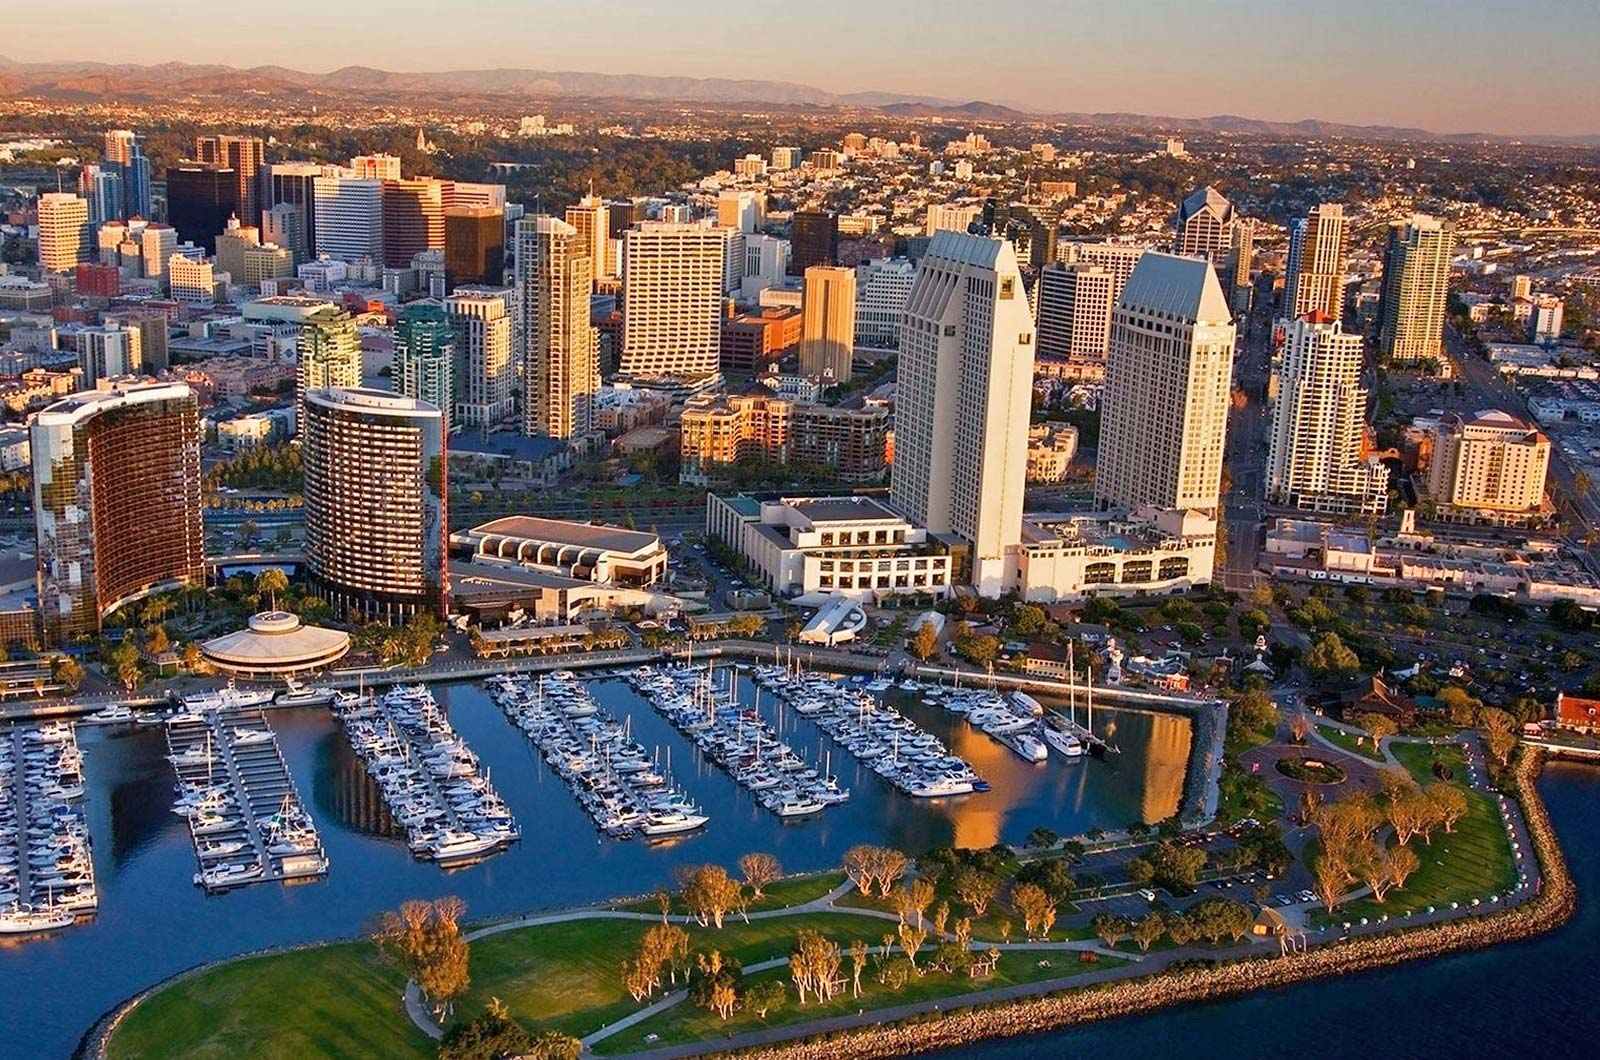 Featured Image SD | San Diego Virtual Tour Photographer | San Diego Matterport 3D Tour Service Provider | San Diego Aerial Photography Services | San Diego HDR Real Estate Photography Services